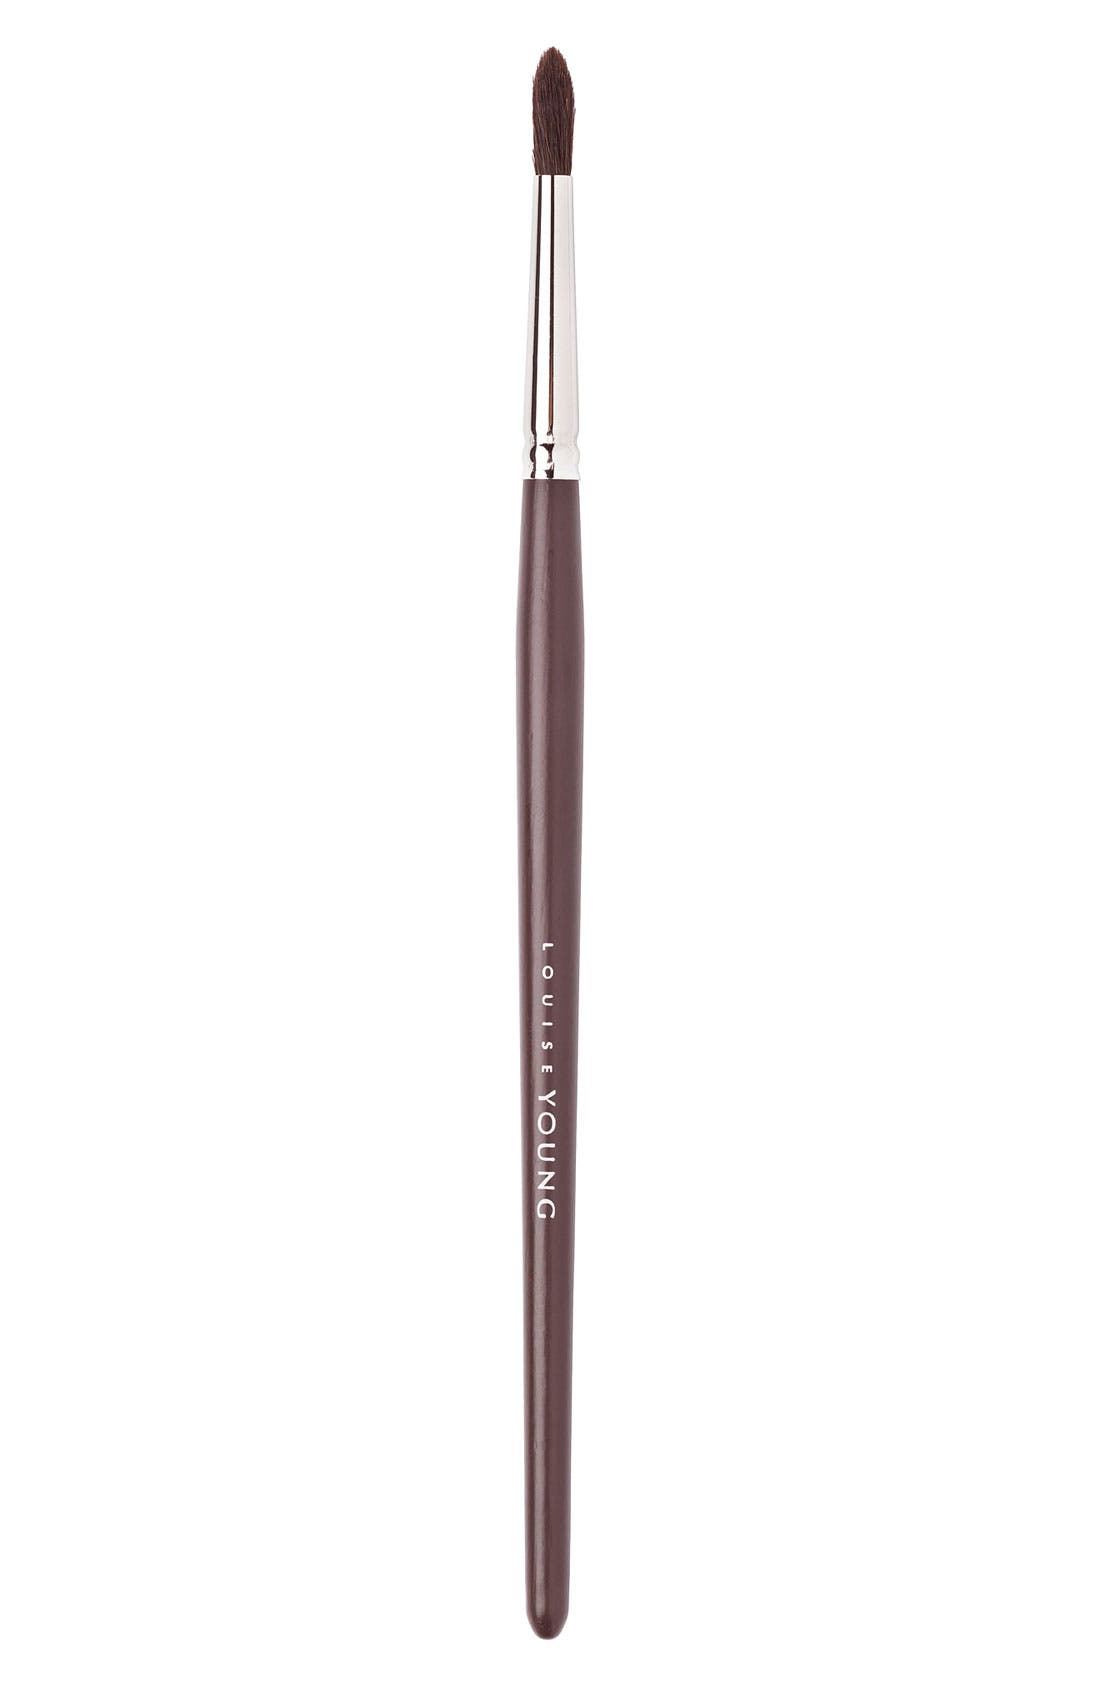 Louise Young Cosmetics LY38B Tapered Shadow Brush (Slimmest)